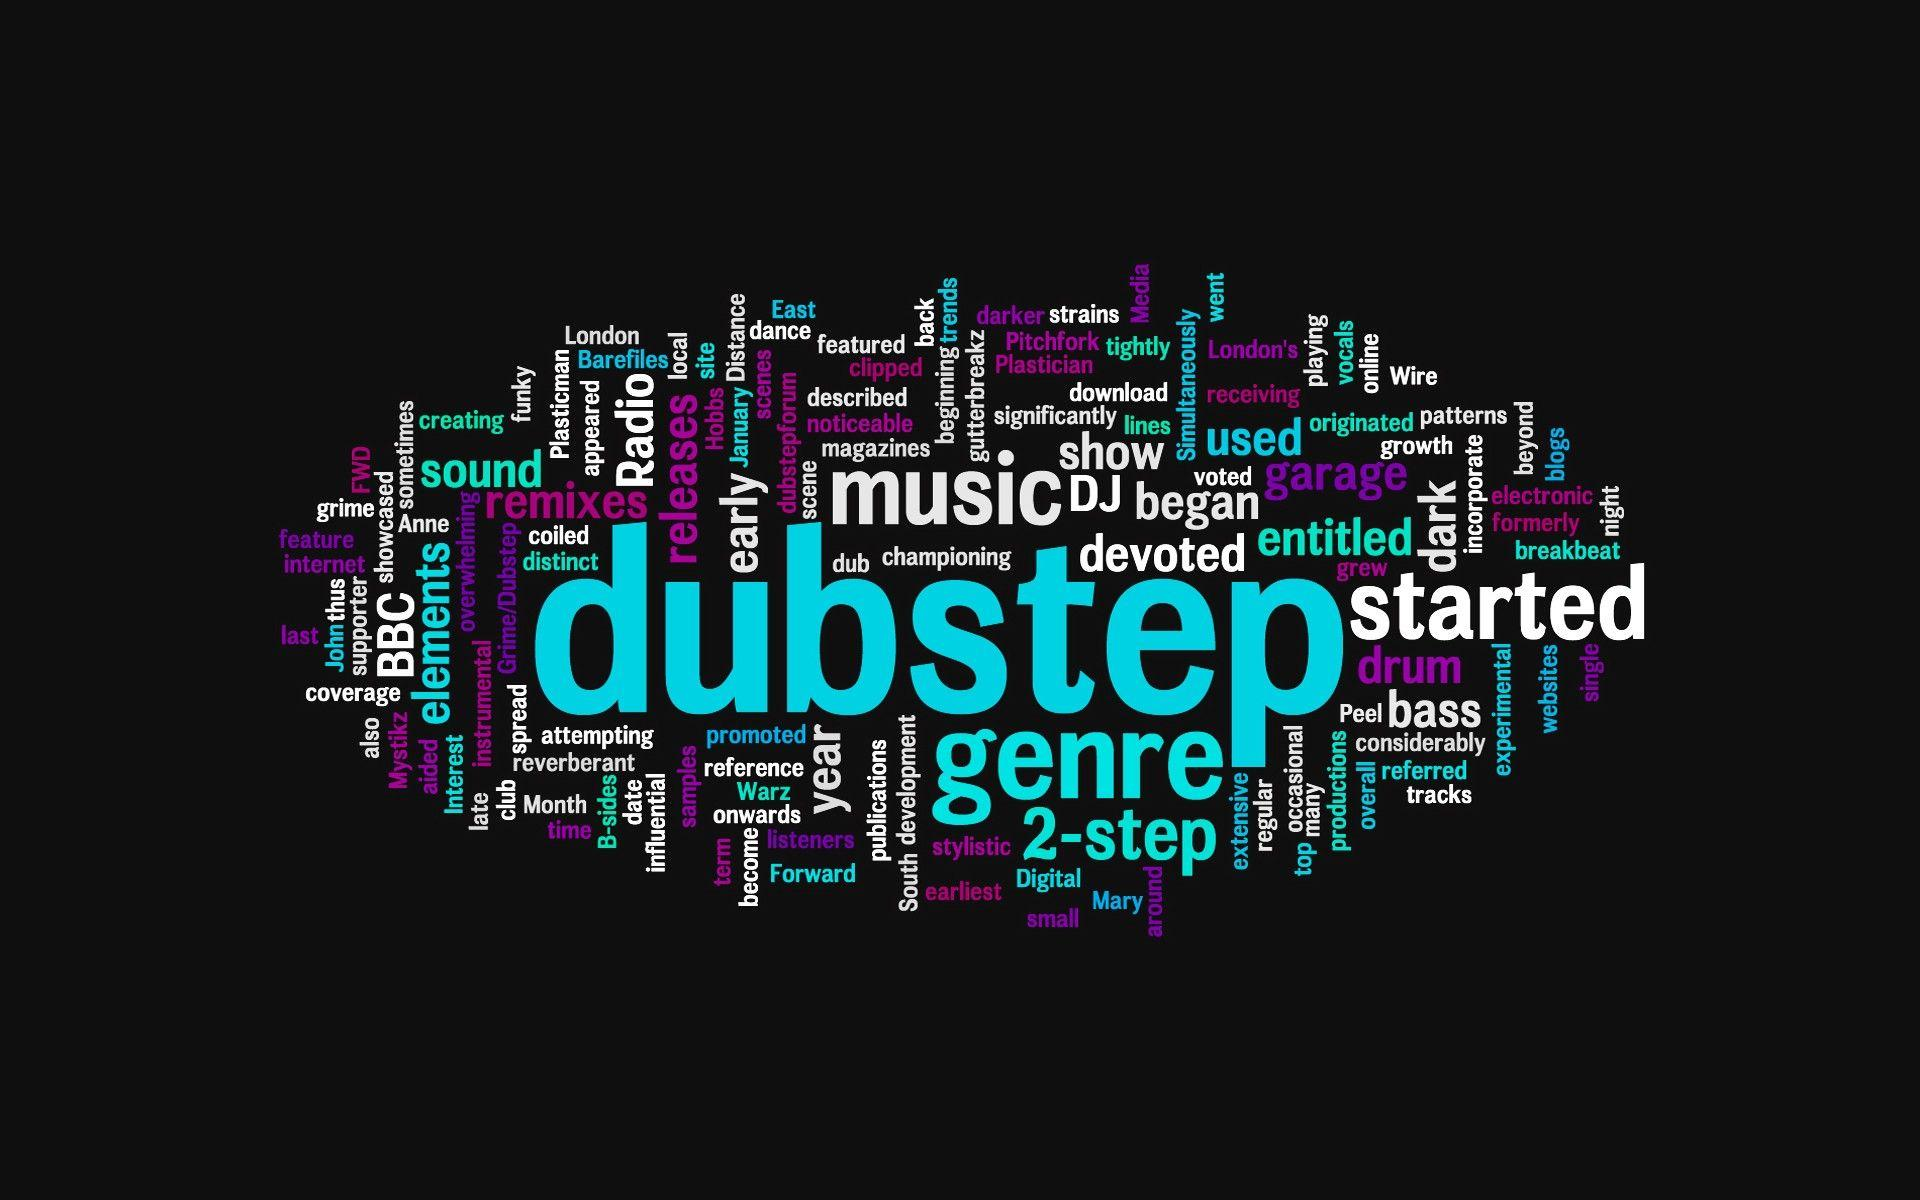 music, bass, electric, dubstep, DJ, wordcloud :: Wallpapers